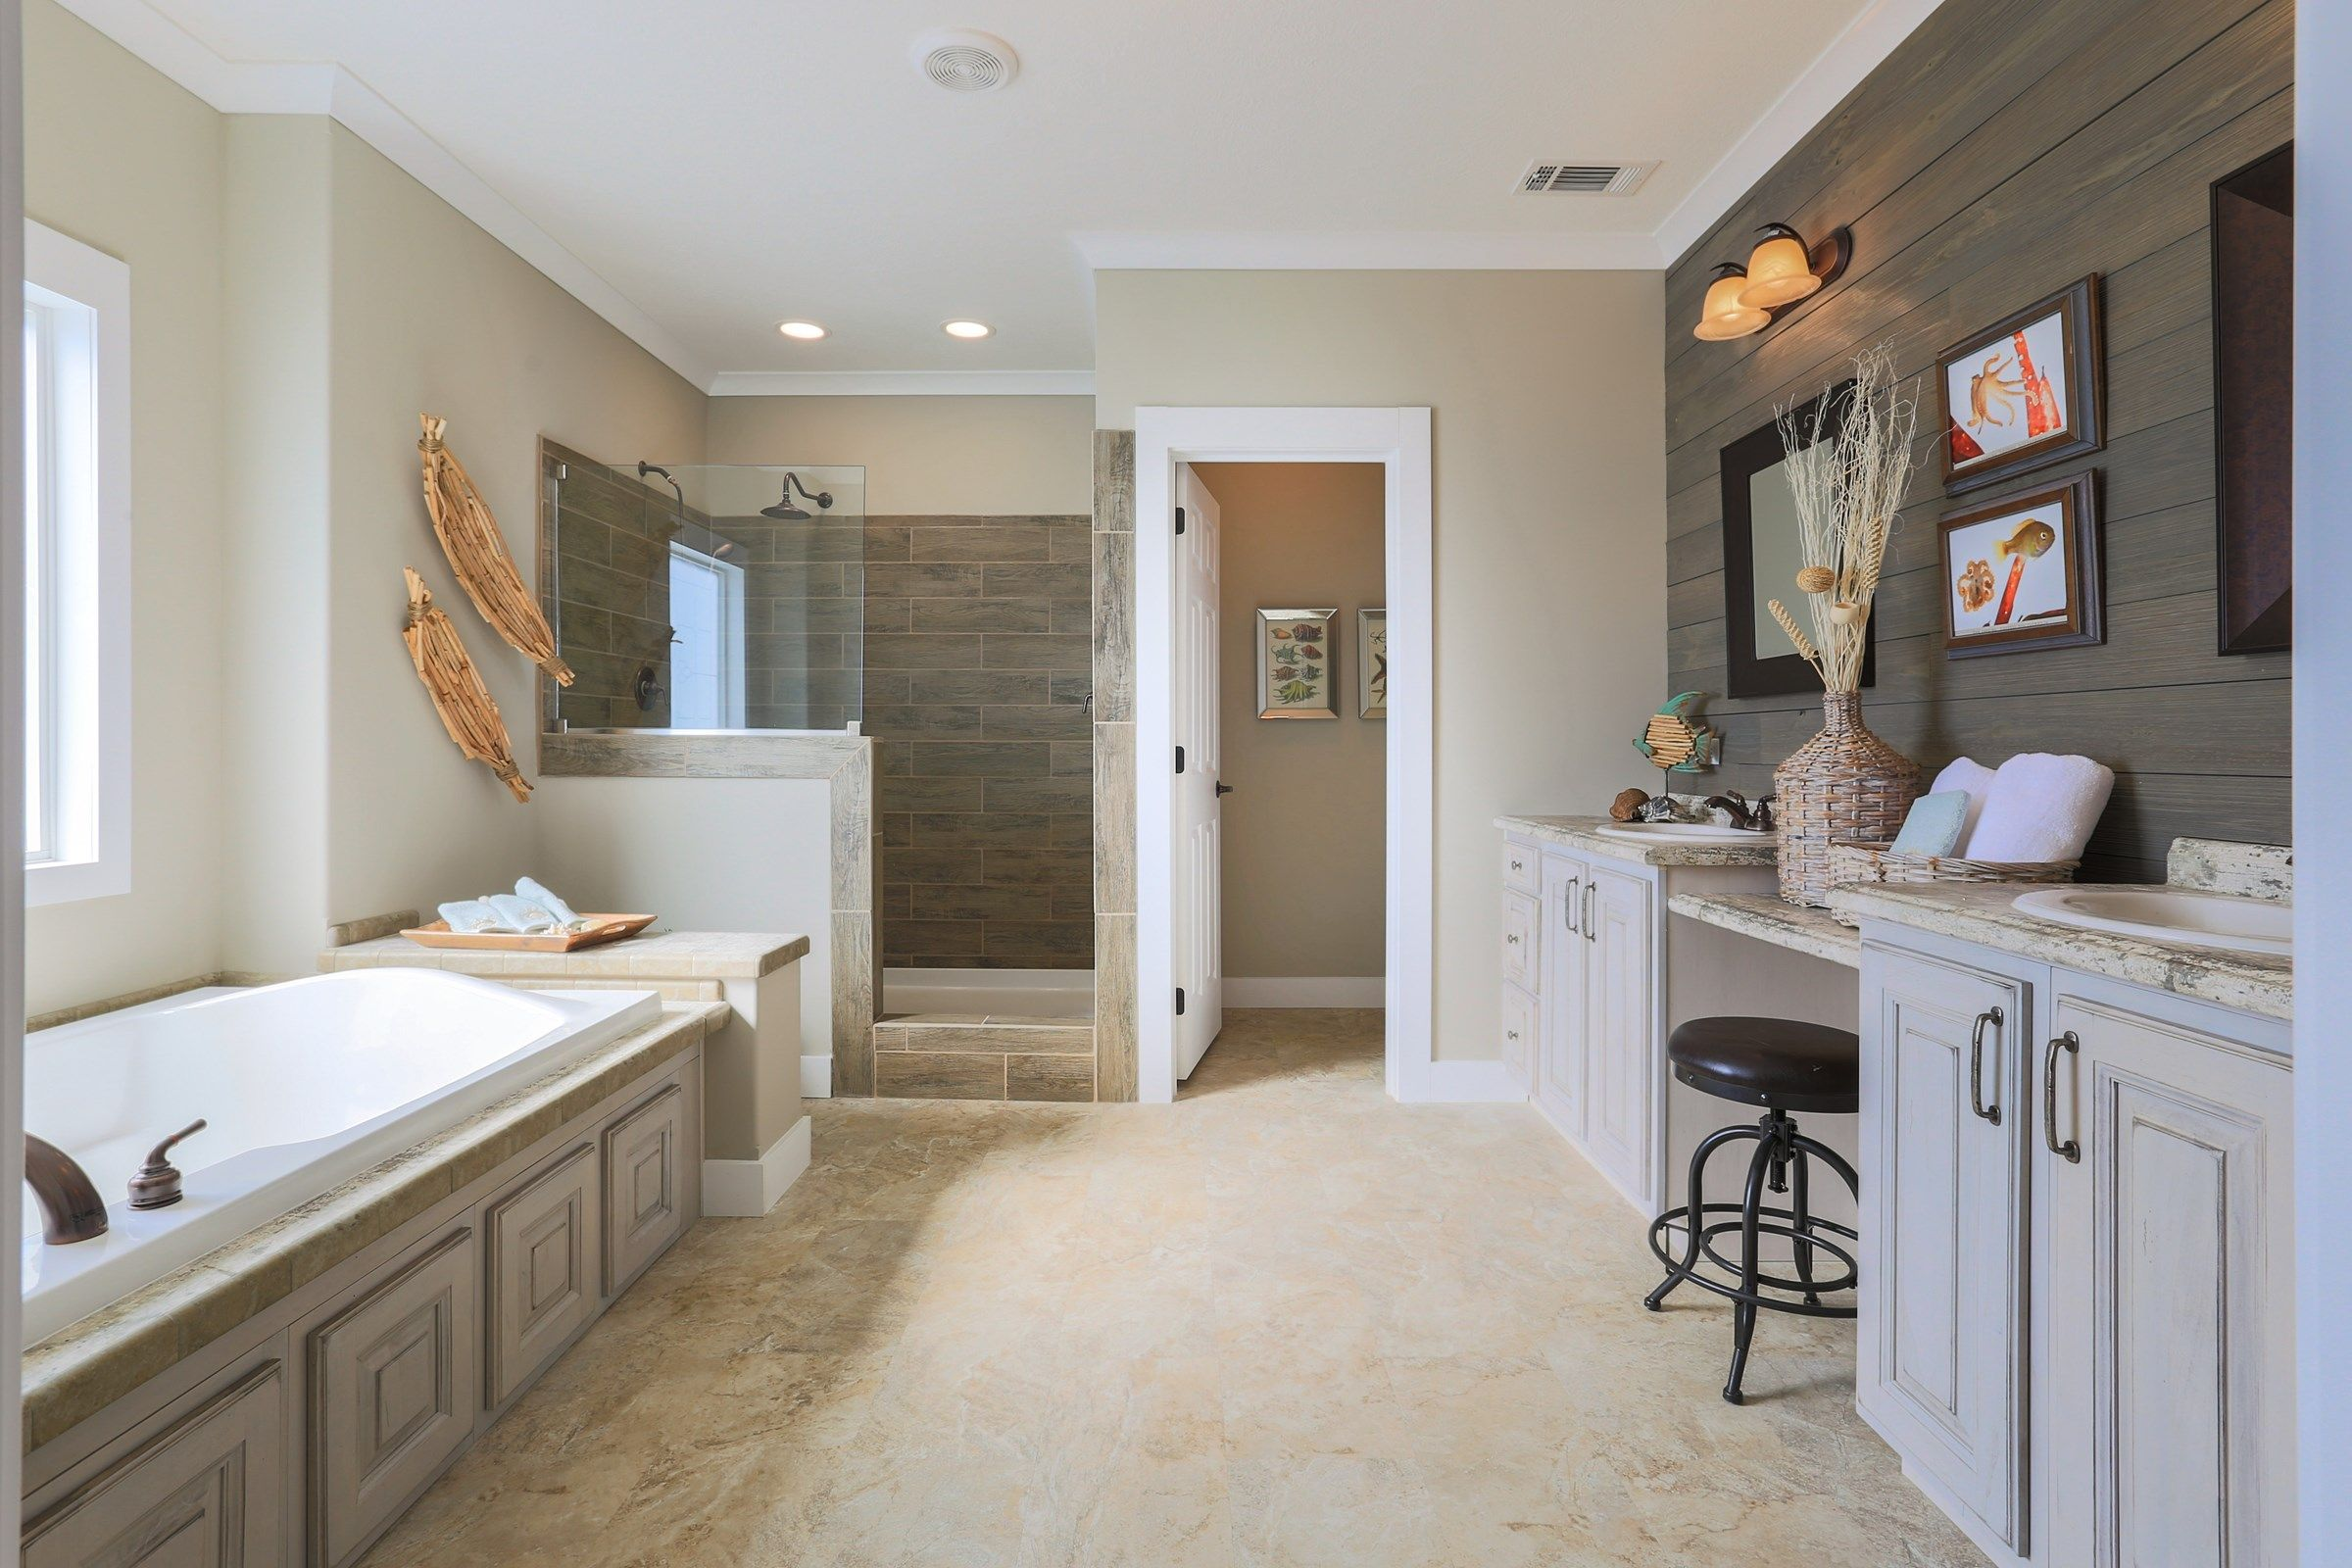 The IMP 9300 Master Bathroom. This Manufactured Mobile